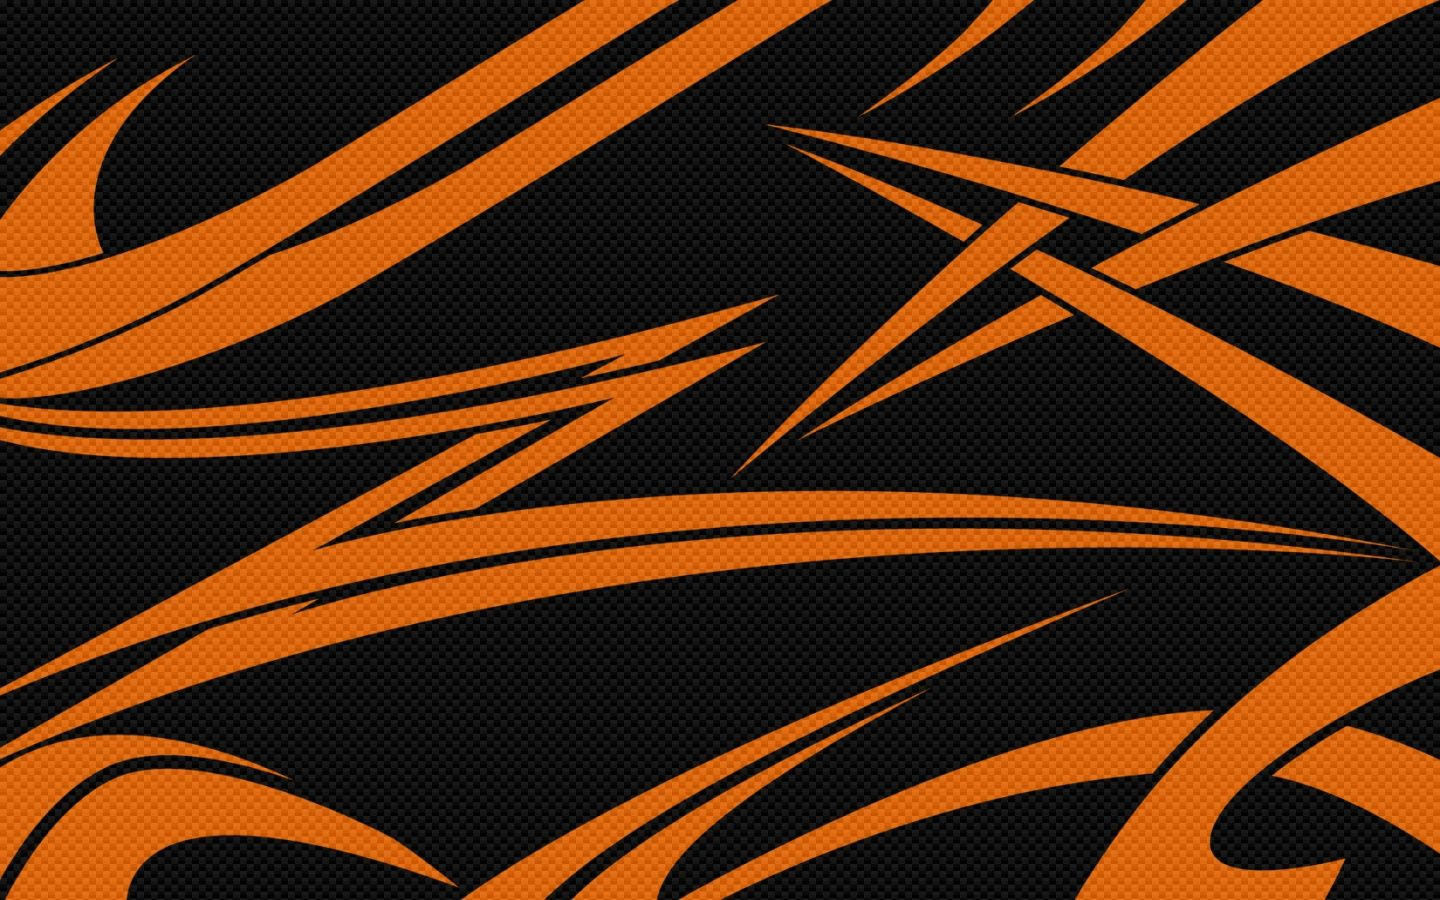 Wallpaper 1440x900 black orange carbon desktop pc and mac wallpaper 1440x900 black orange carbon desktop pc and mac wallpaper voltagebd Choice Image